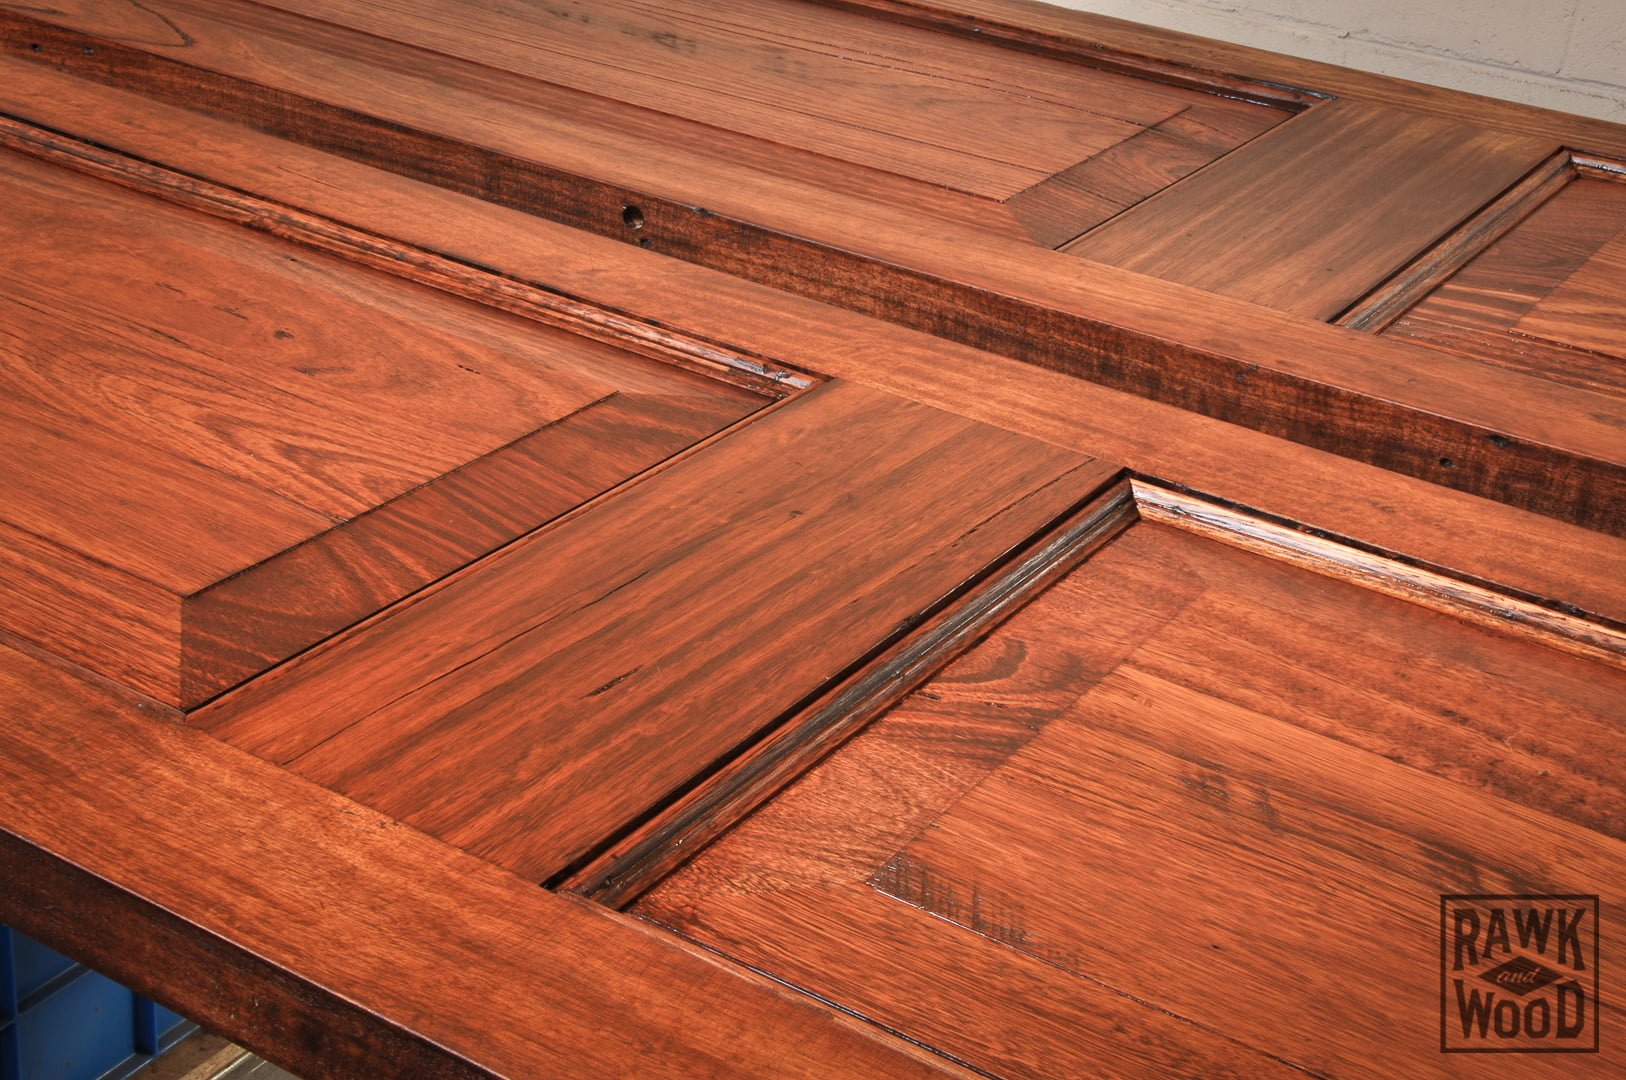 Recycled-Timber-Doors, made in Melbourne by Rawk and Wood